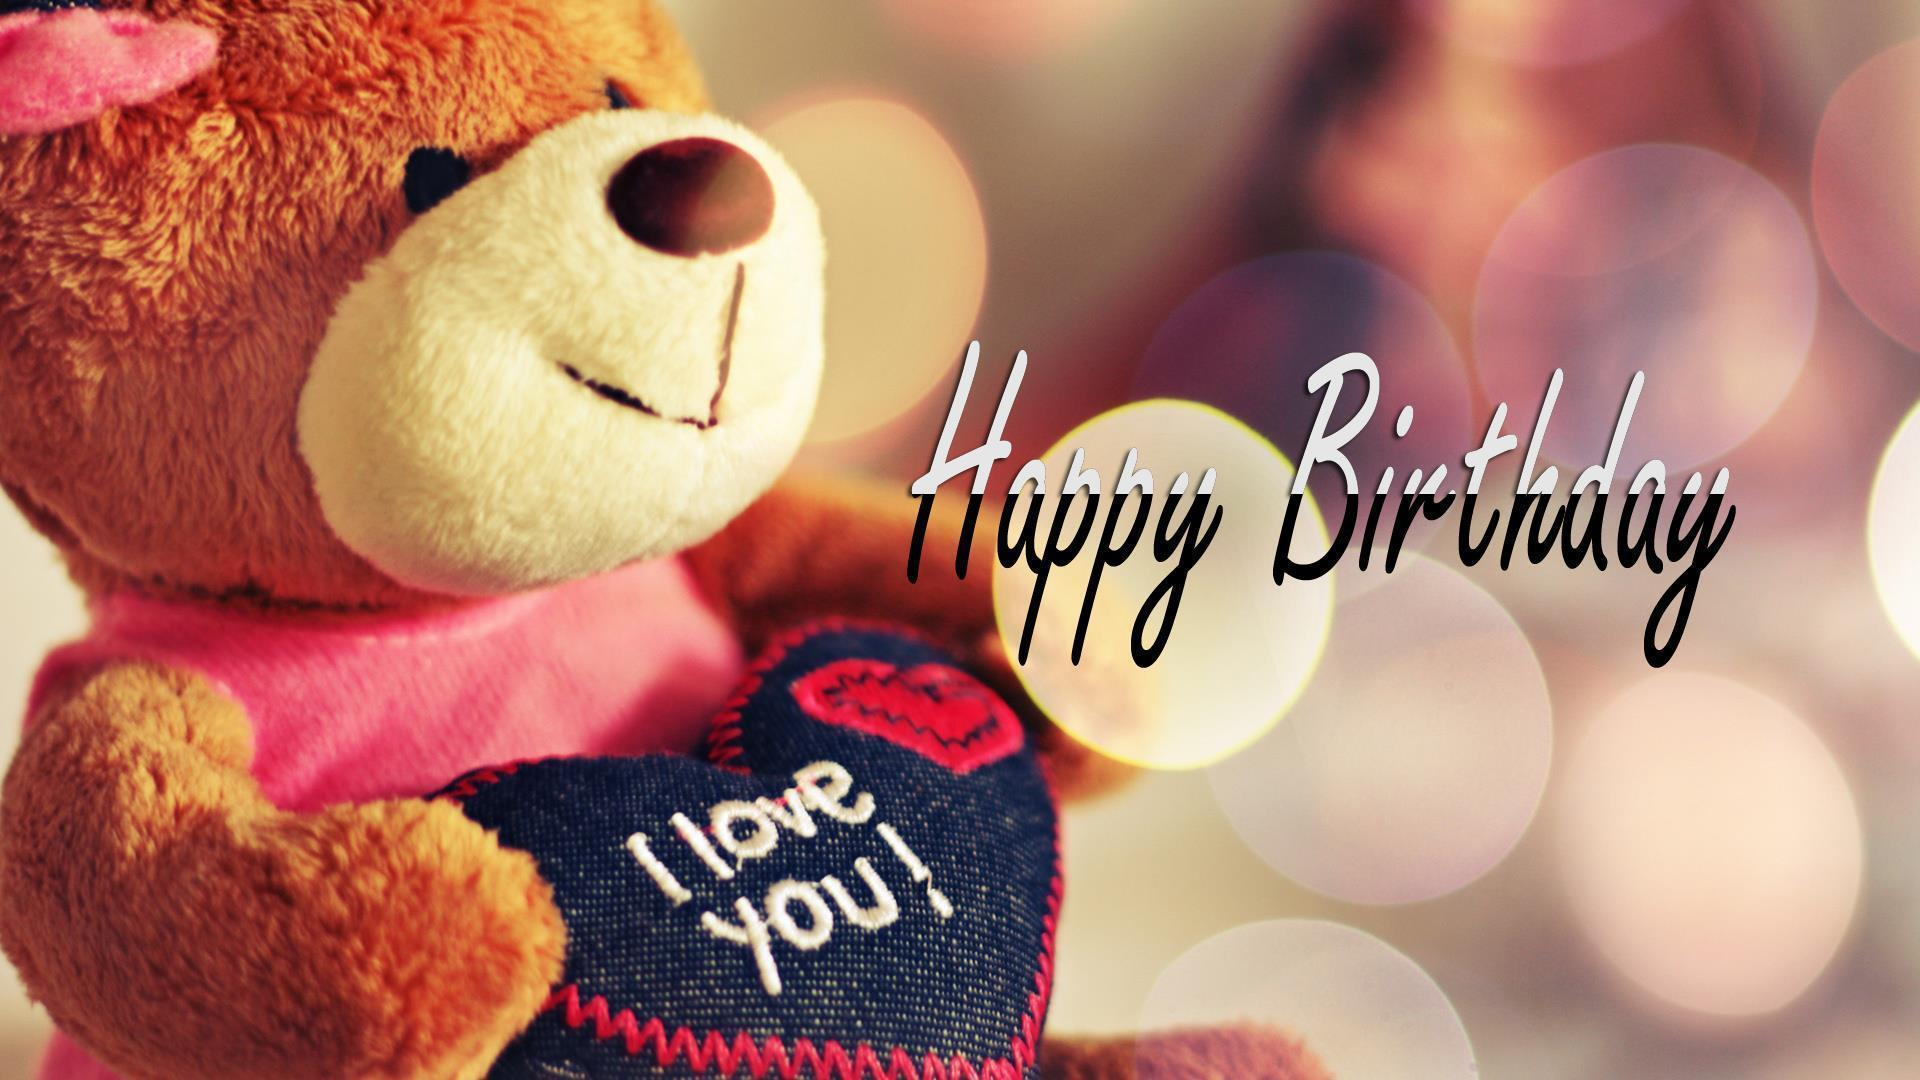 Happy birthday love hd wallpaper 1920x1080